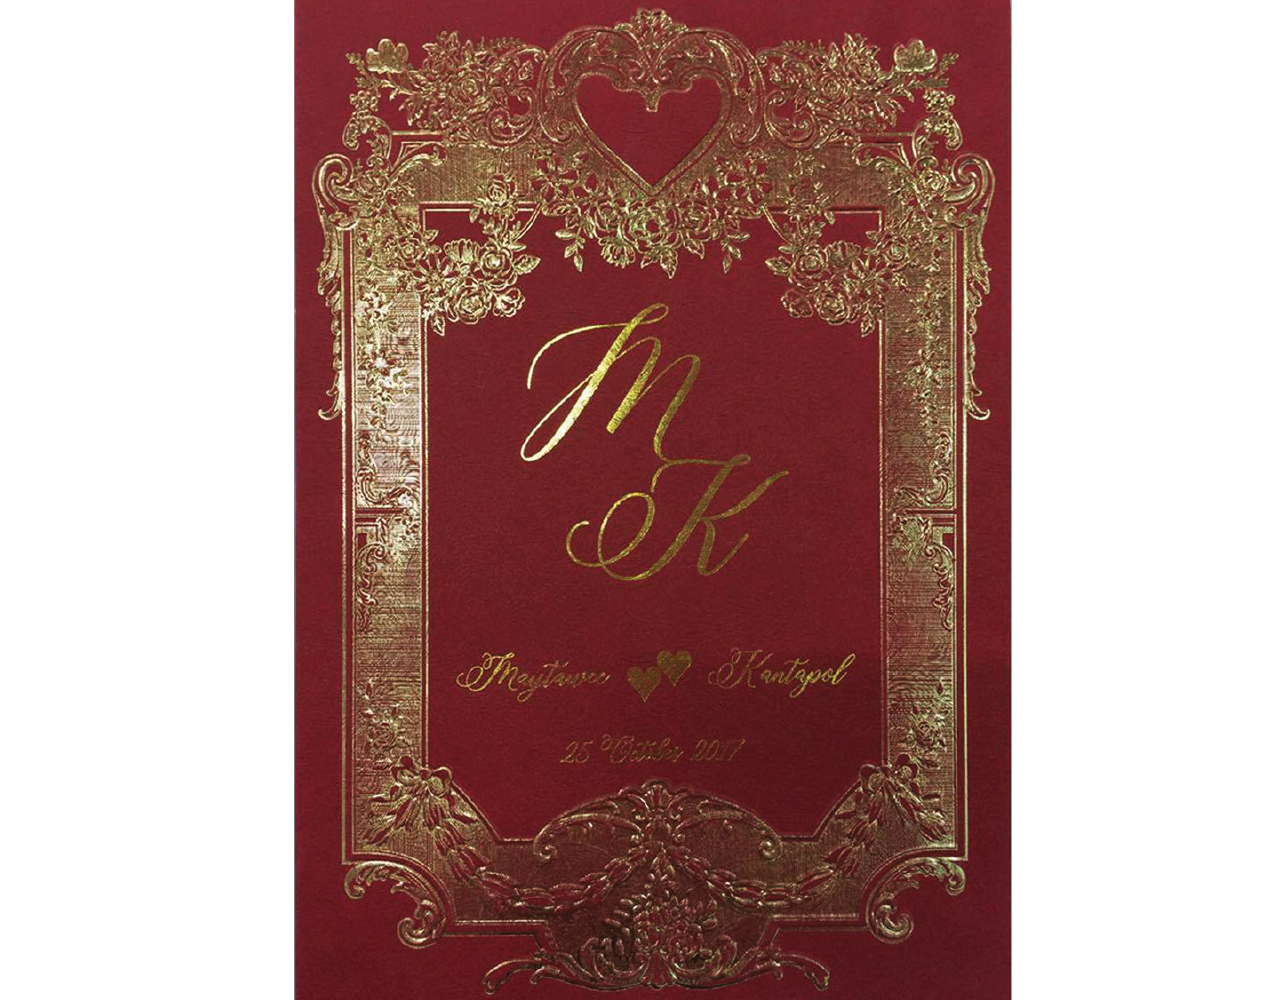 Wedding Card SP1707 [Red] - WEDDING INVITATIONS CARDS | By Gracegreeting